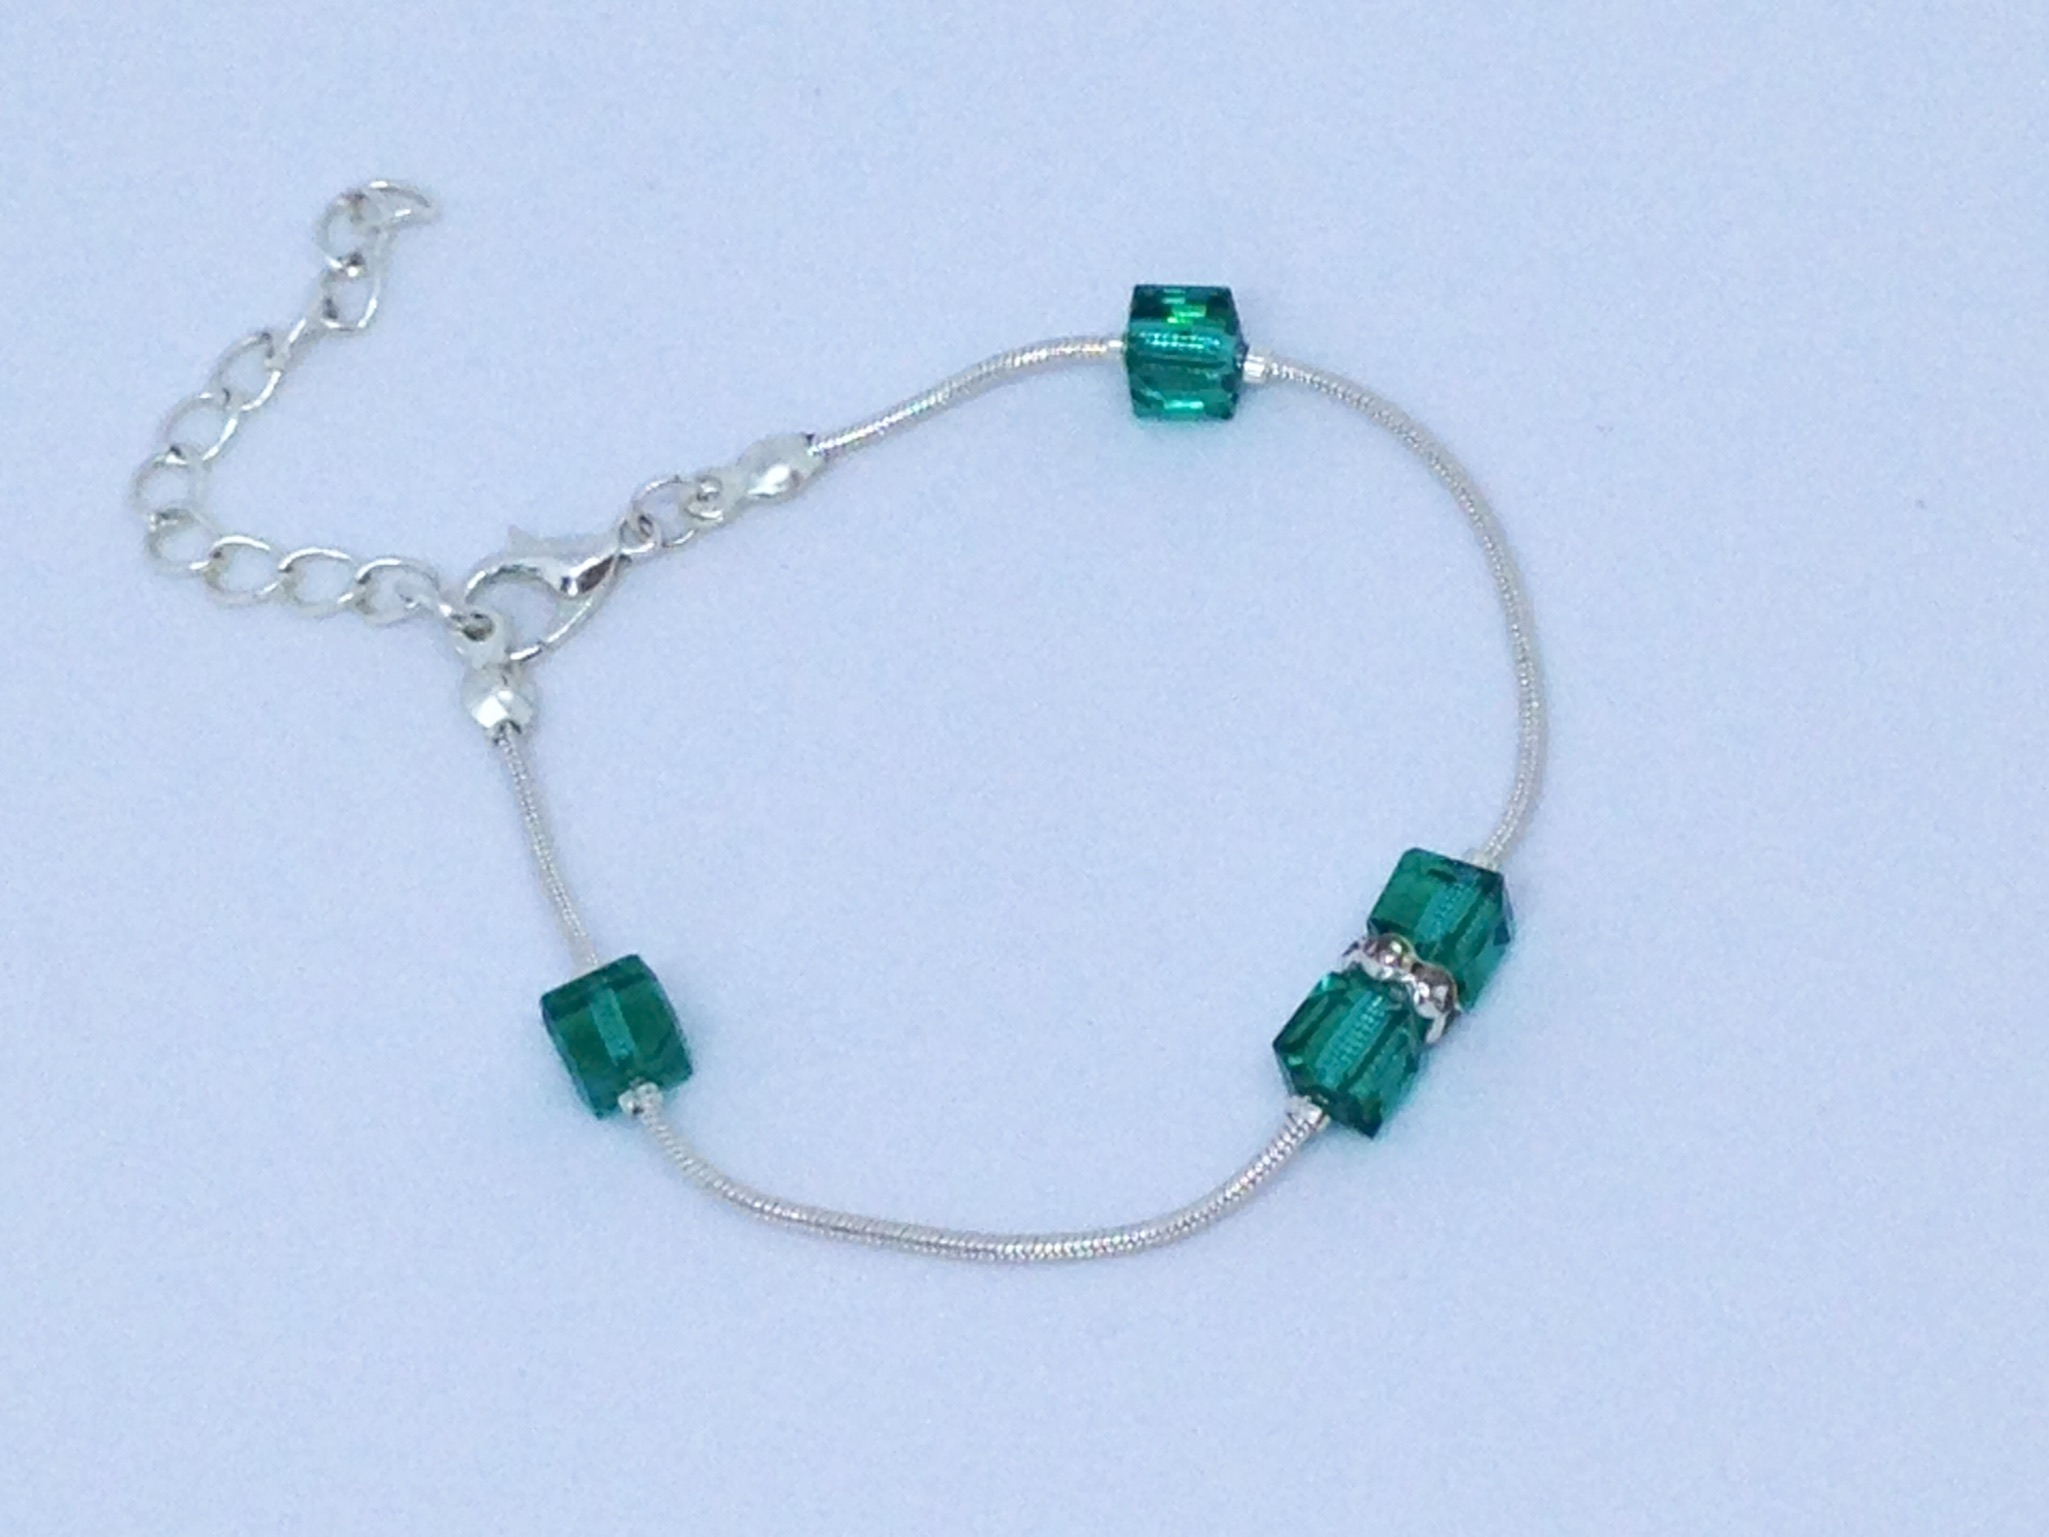 Bracelet brillants verts